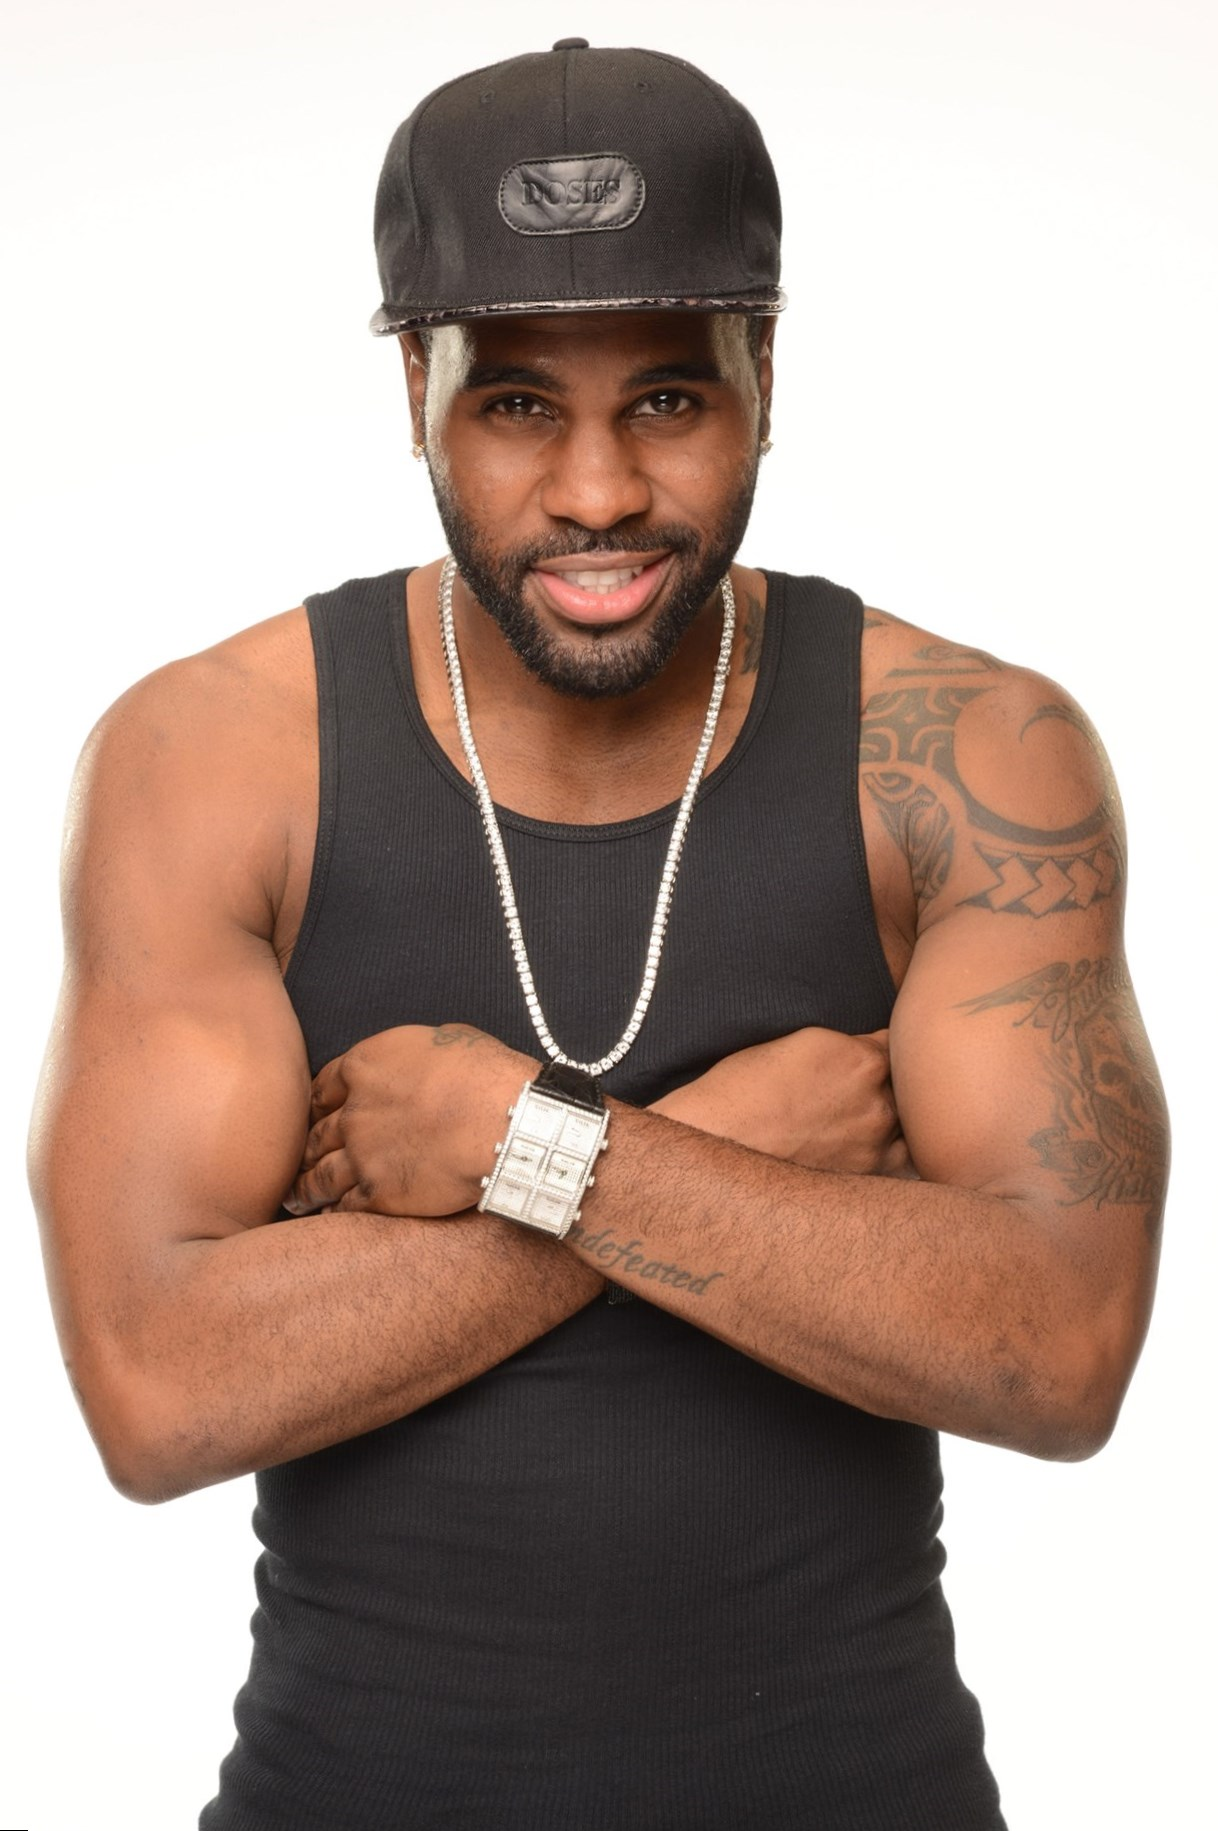 Jason Derulo weight, height and age  We know it all!